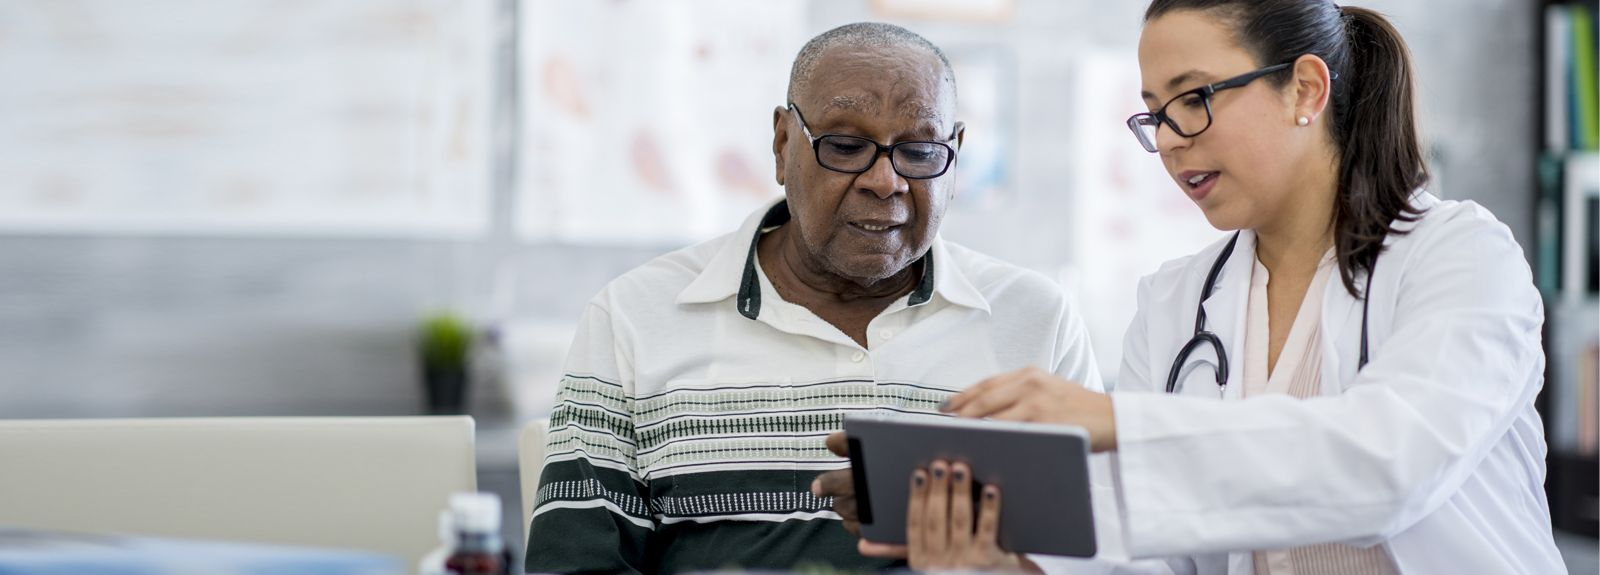 Doctor and senior patient looking at tablet